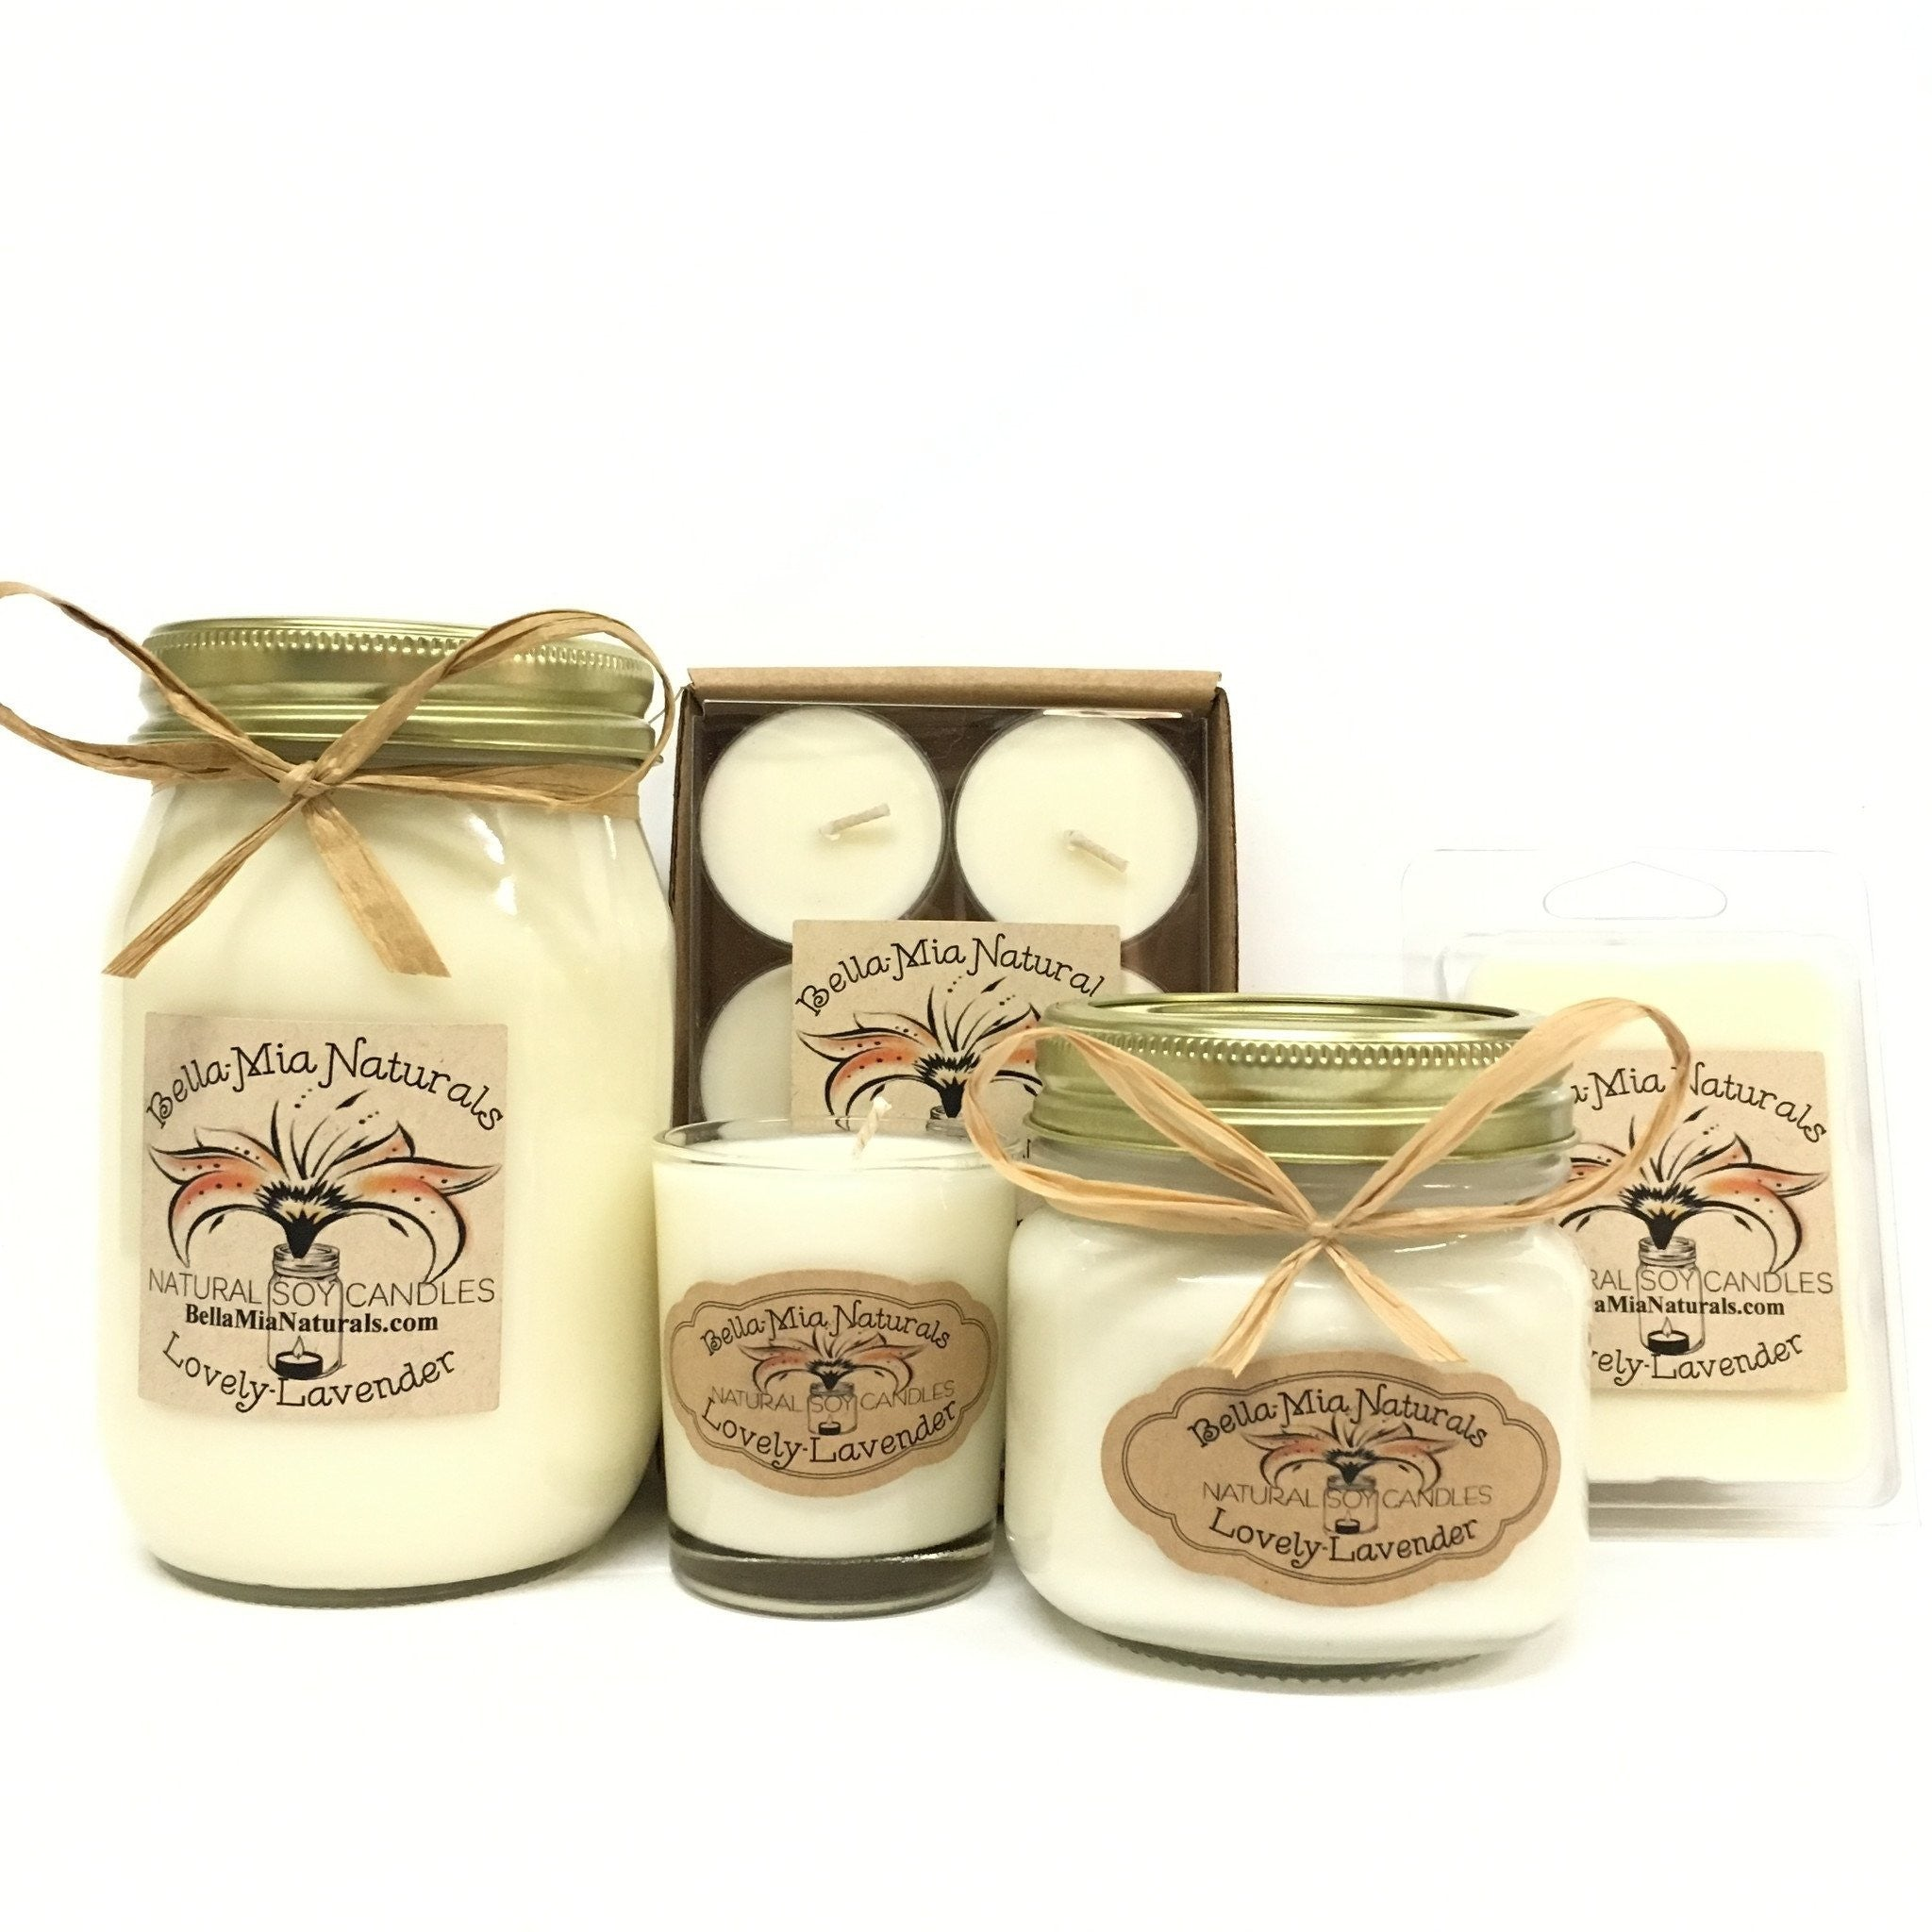 Lovely-Lavender Natural Hand Poured Soy Candles -  - Bella-Mia Naturals All Natural Soy Candles & Lip Balms - 1